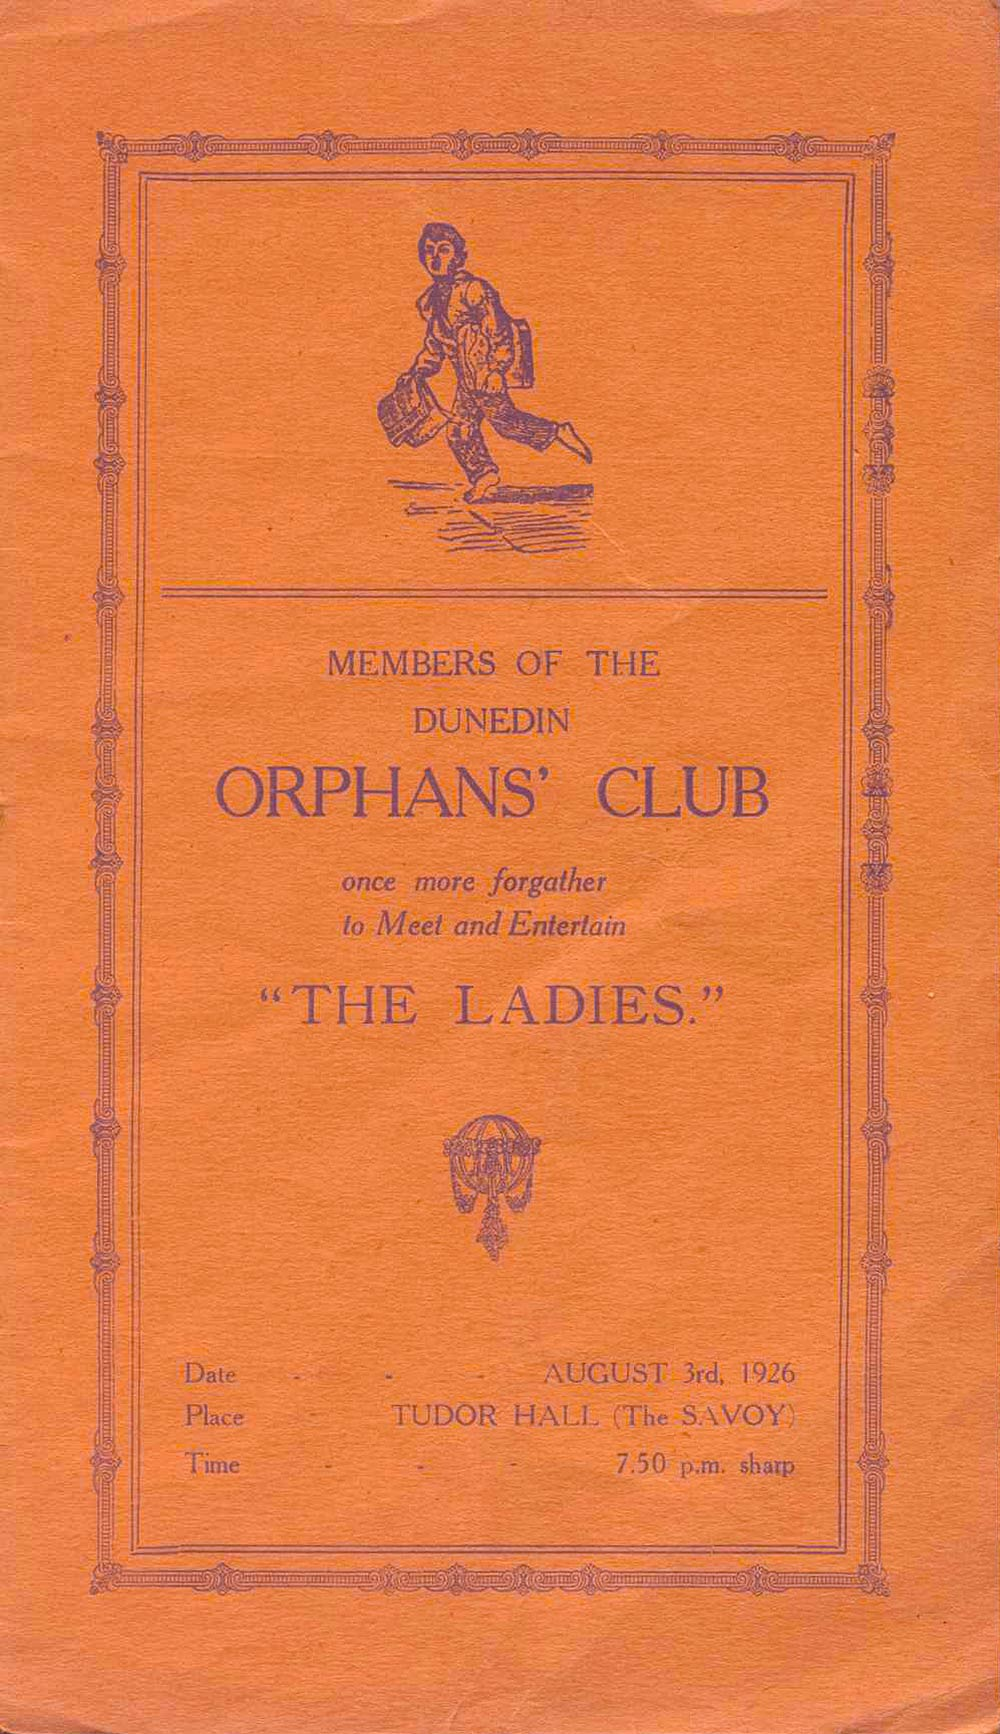 <em>Members of the Dunedin Orphans' Club once more forgather to meet and entertain the ladies</em>. (Dunedin Orphans' Club). Tudor Hall, Savoy, Aug. 3, 1926.